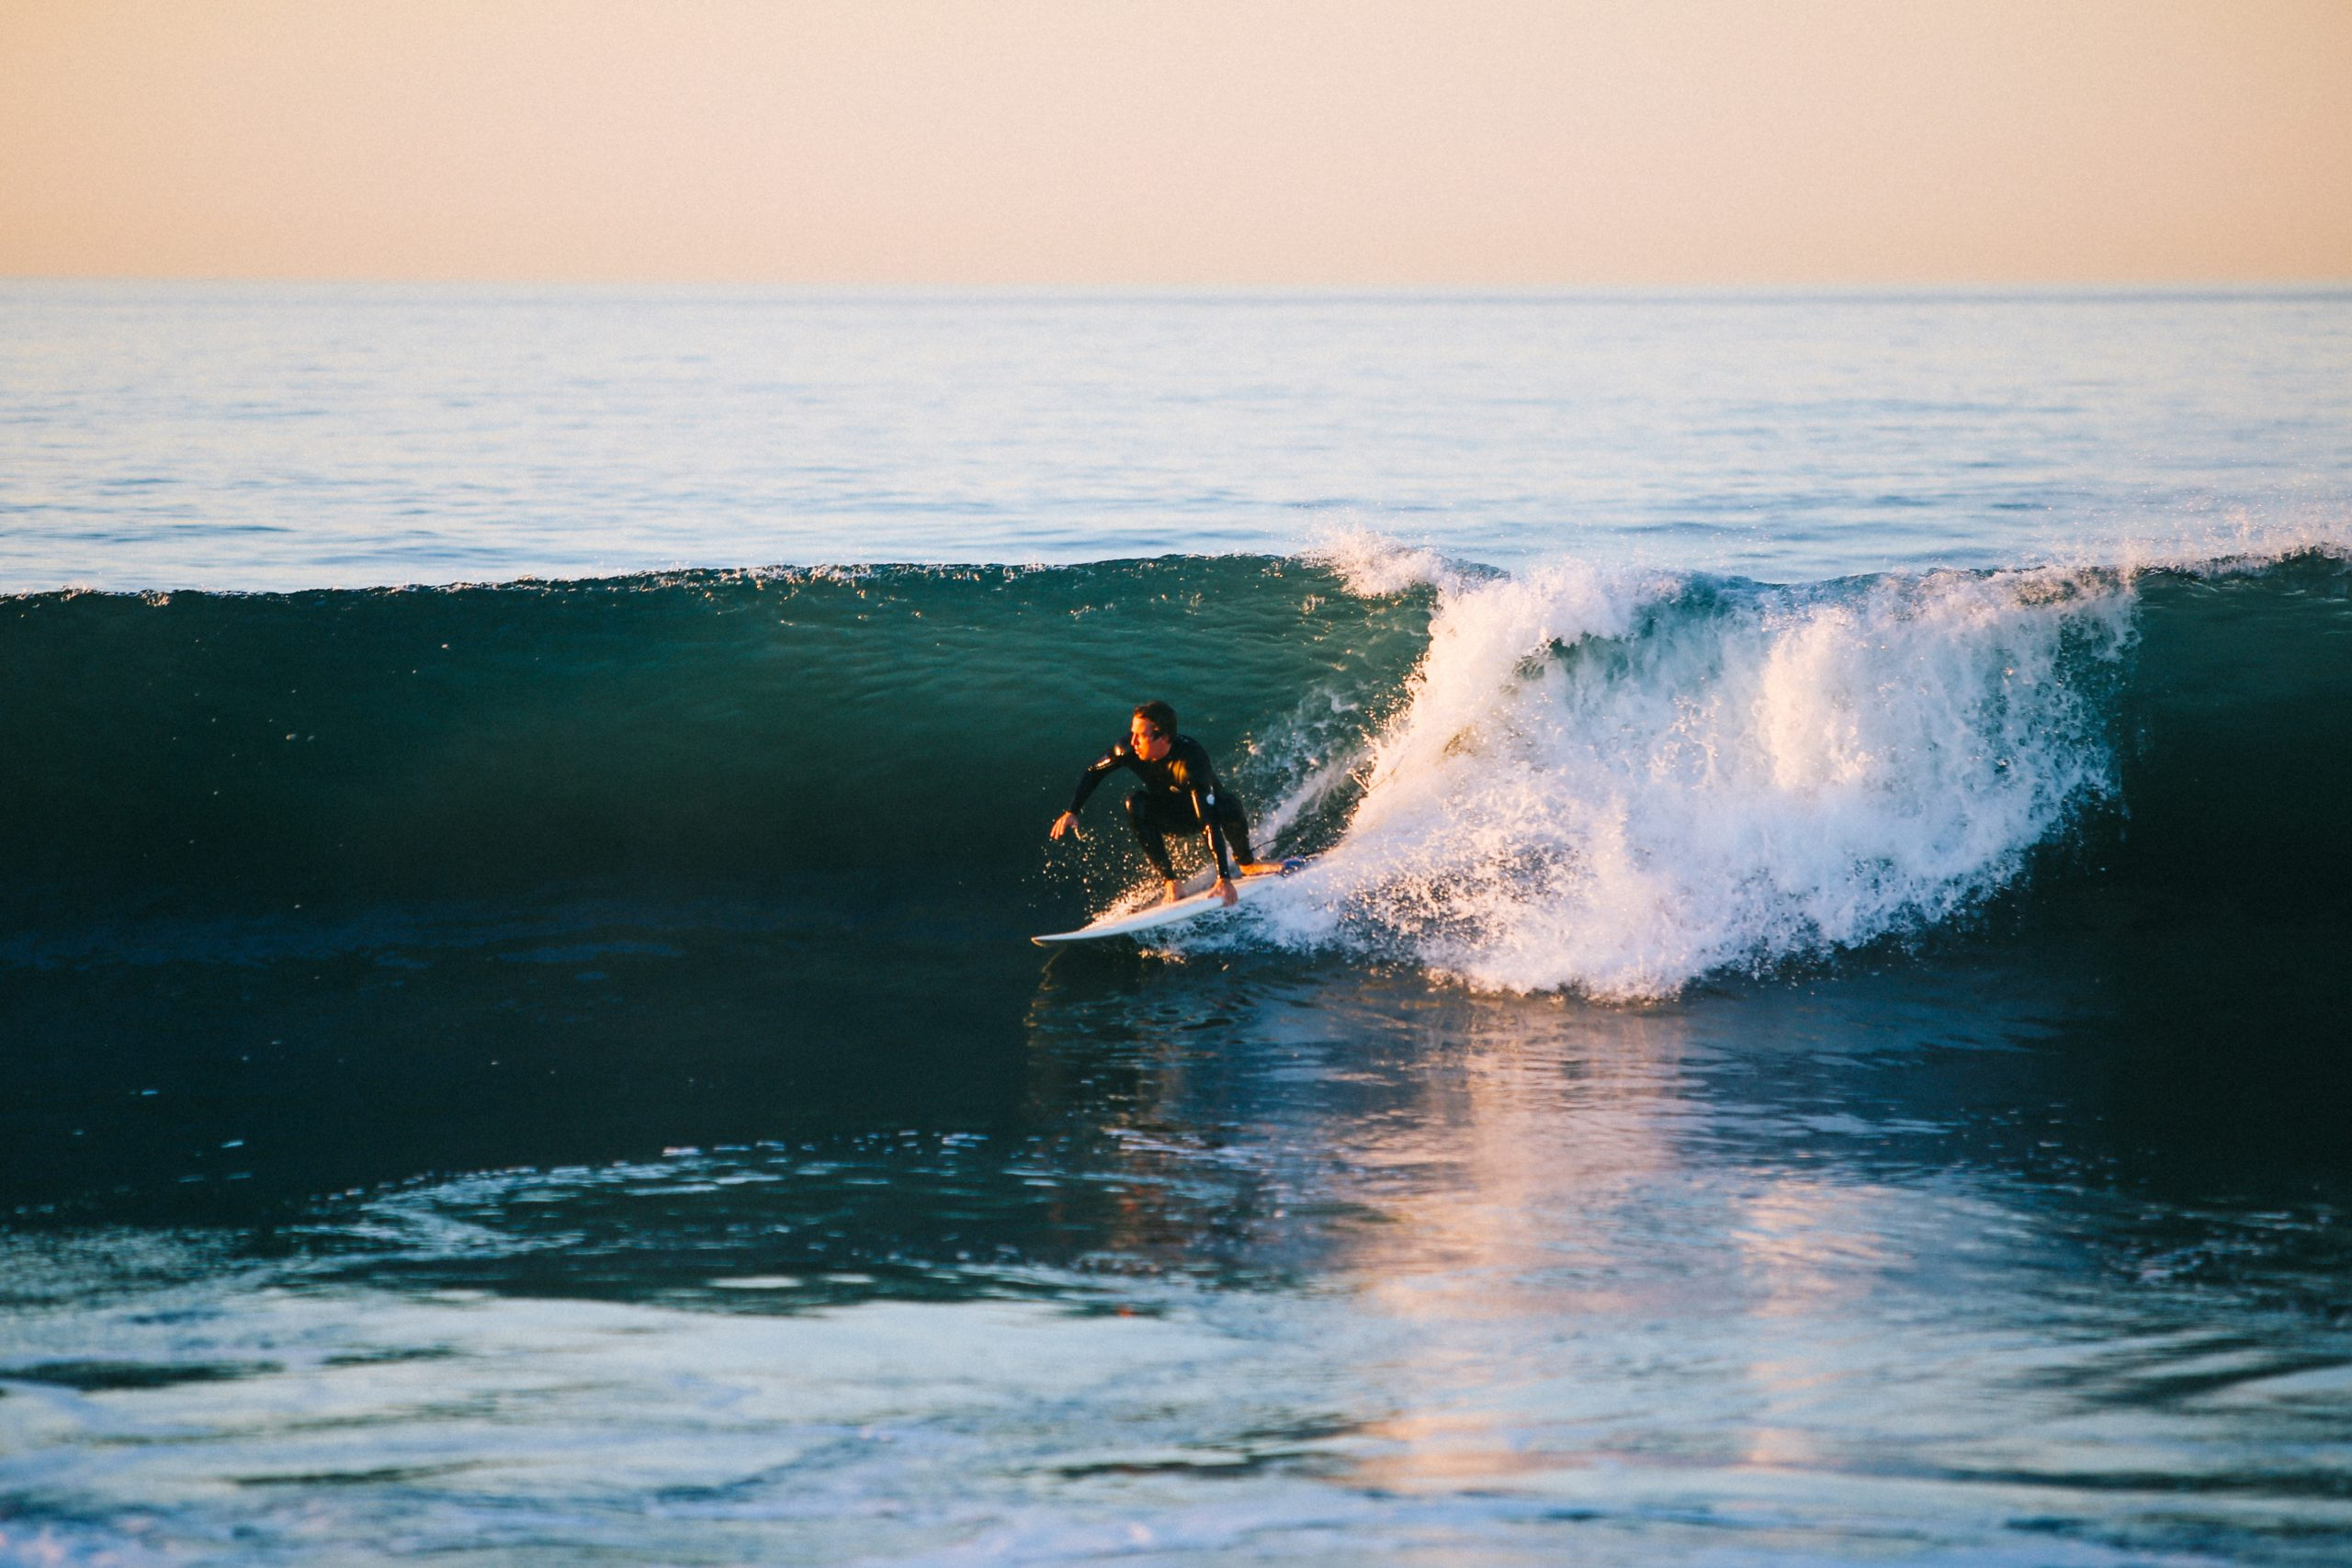 Surfing Instruction: How To Find A Great Location For Surf Lessons